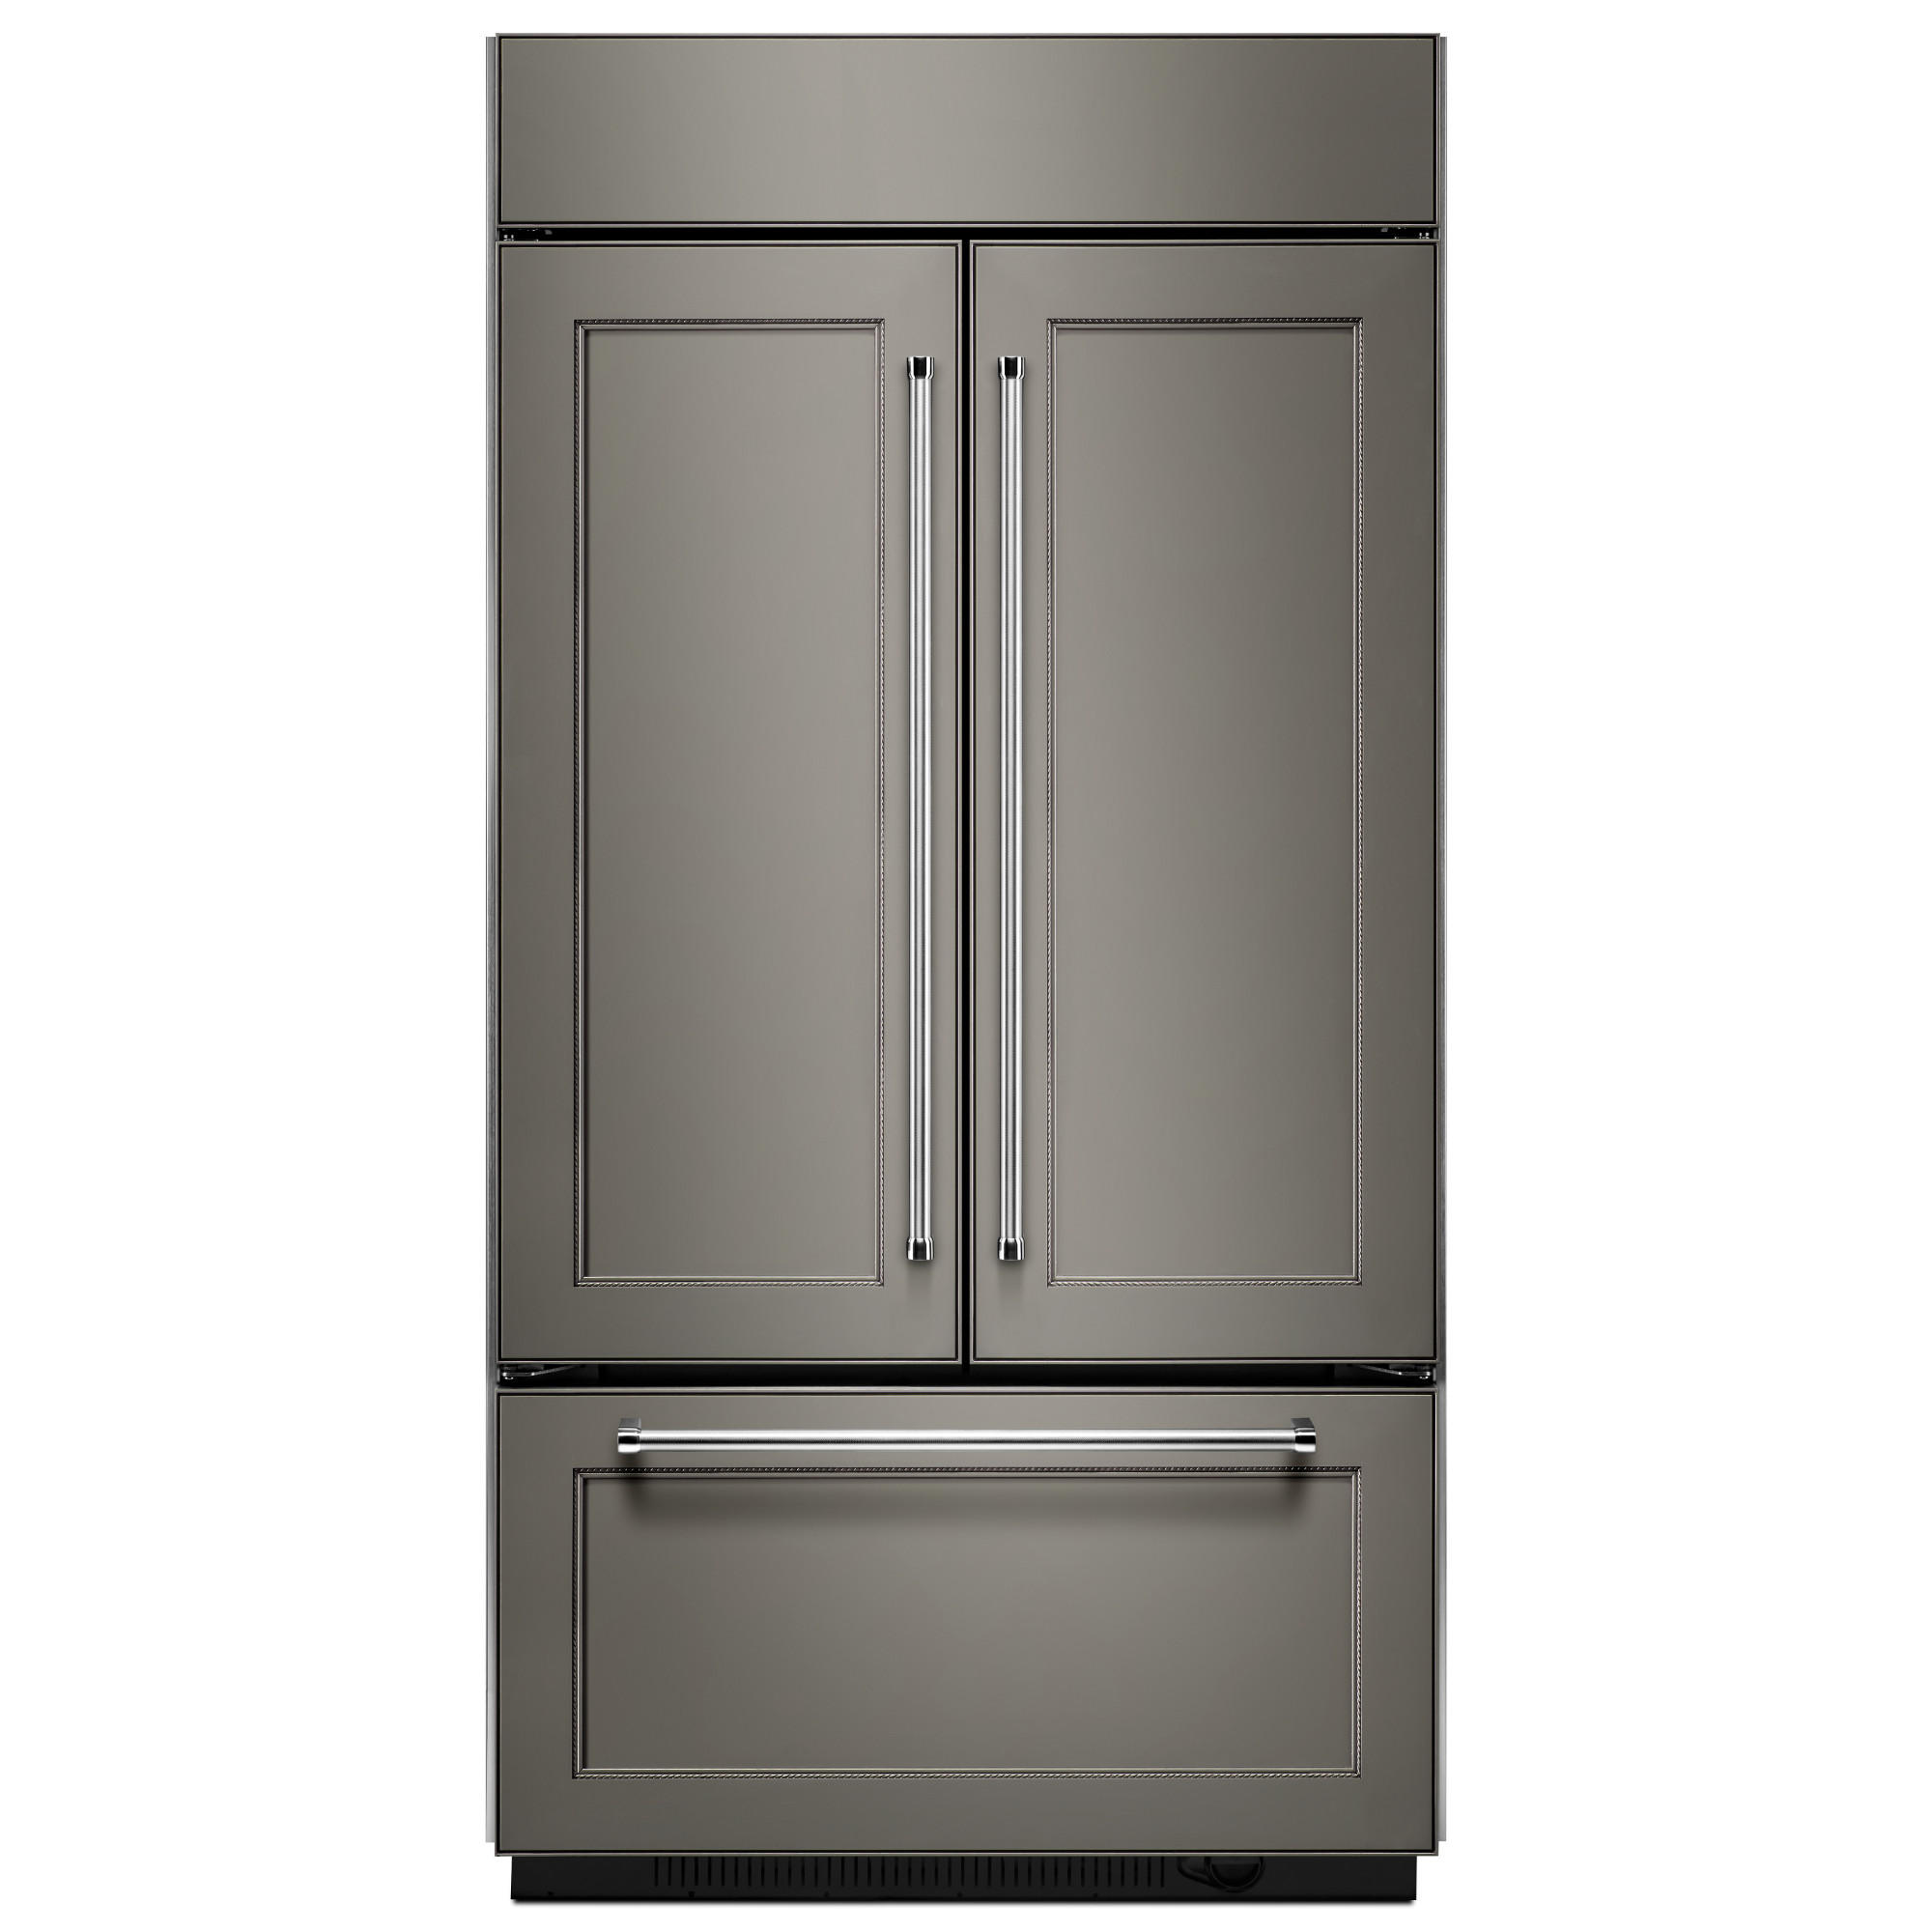 KitchenAid 24.2 cu. ft. Built-In French Door Refrigerator - Panel Ready ENERGY STAR®